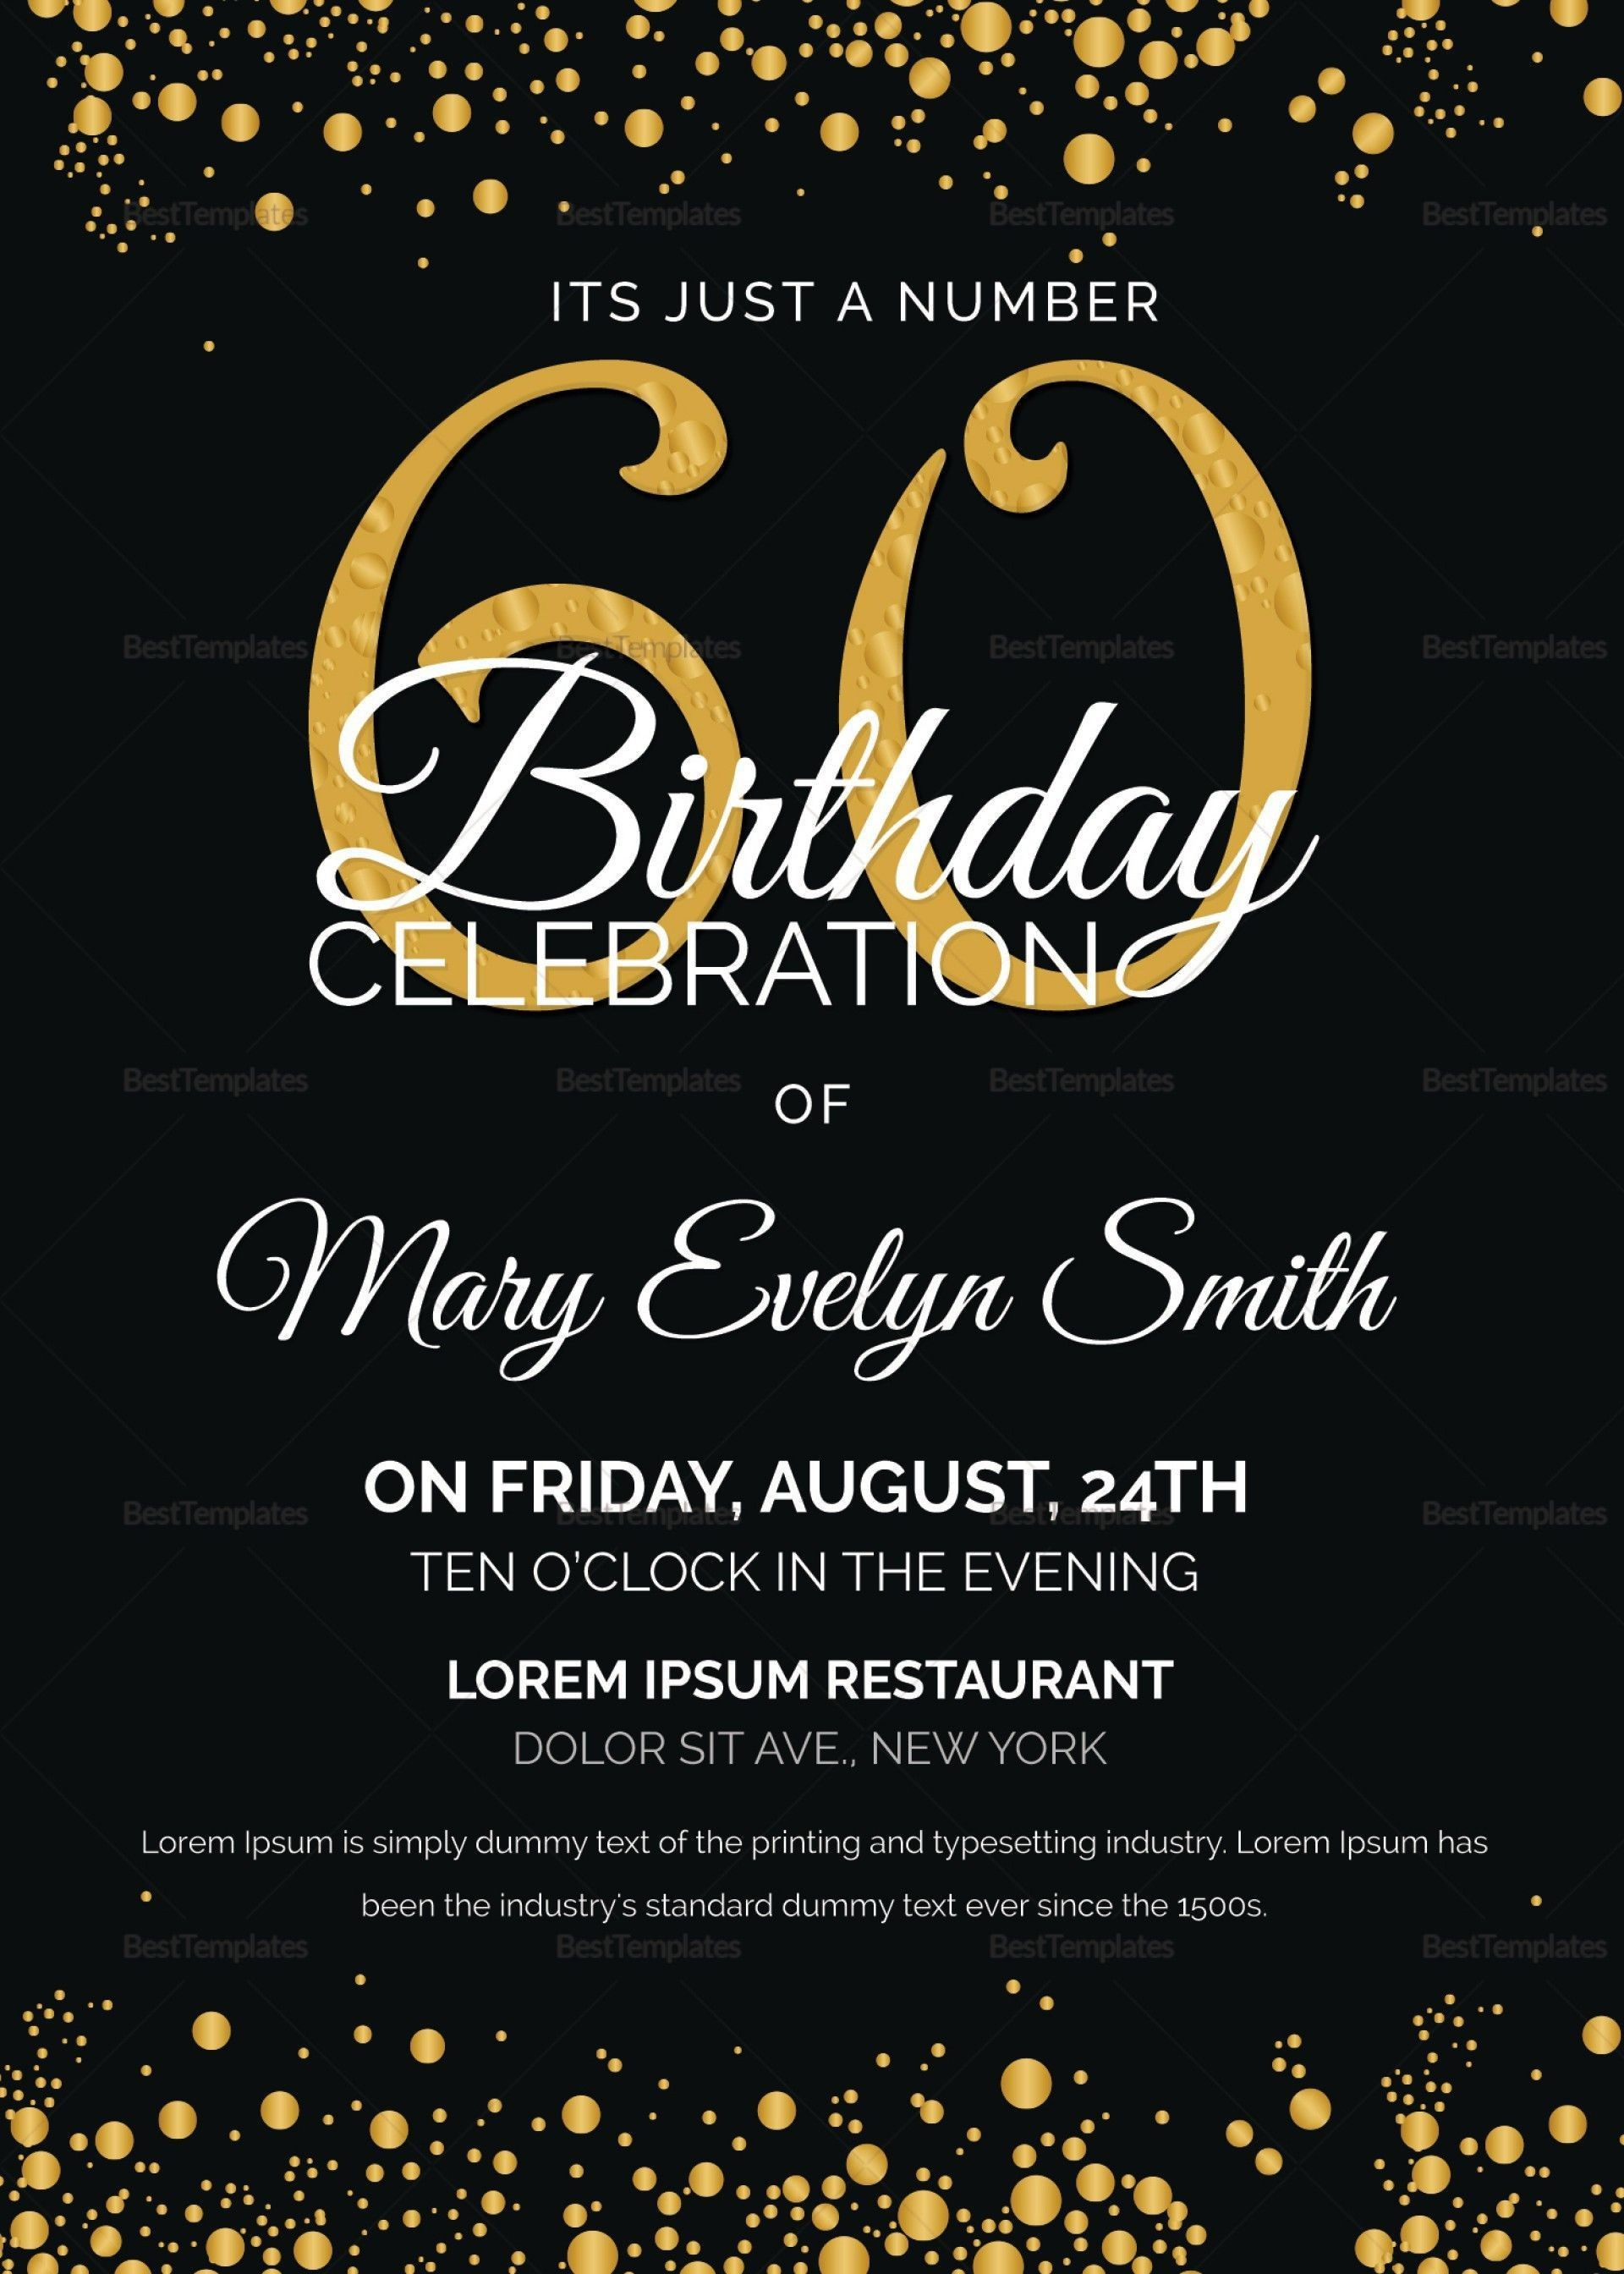 006 Awesome 60 Birthday Invite Template Highest Clarity  Templates 60th Printable Free1920